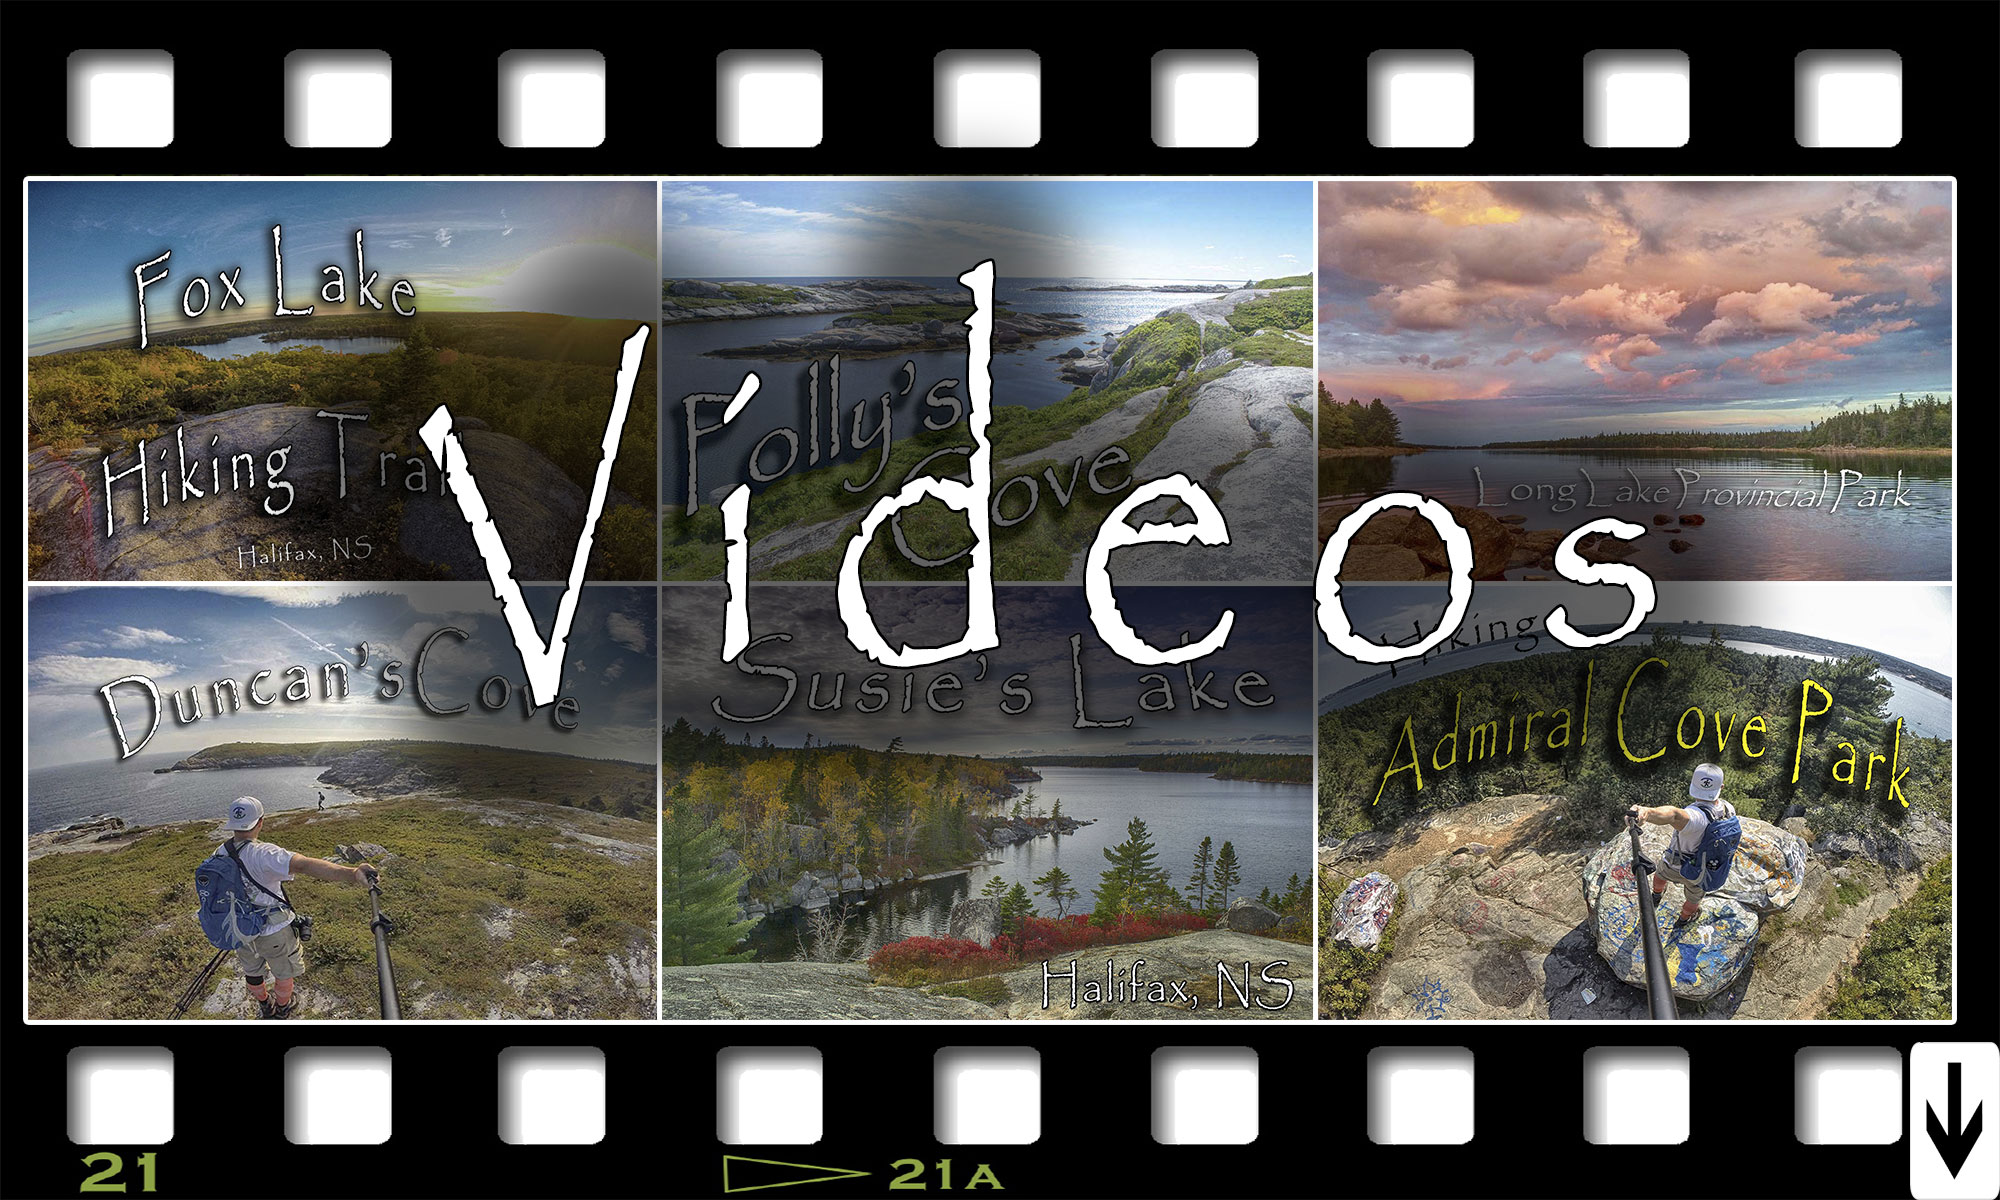 Hiking Biking and Paddling Videos From Halifax, Nova Scotia